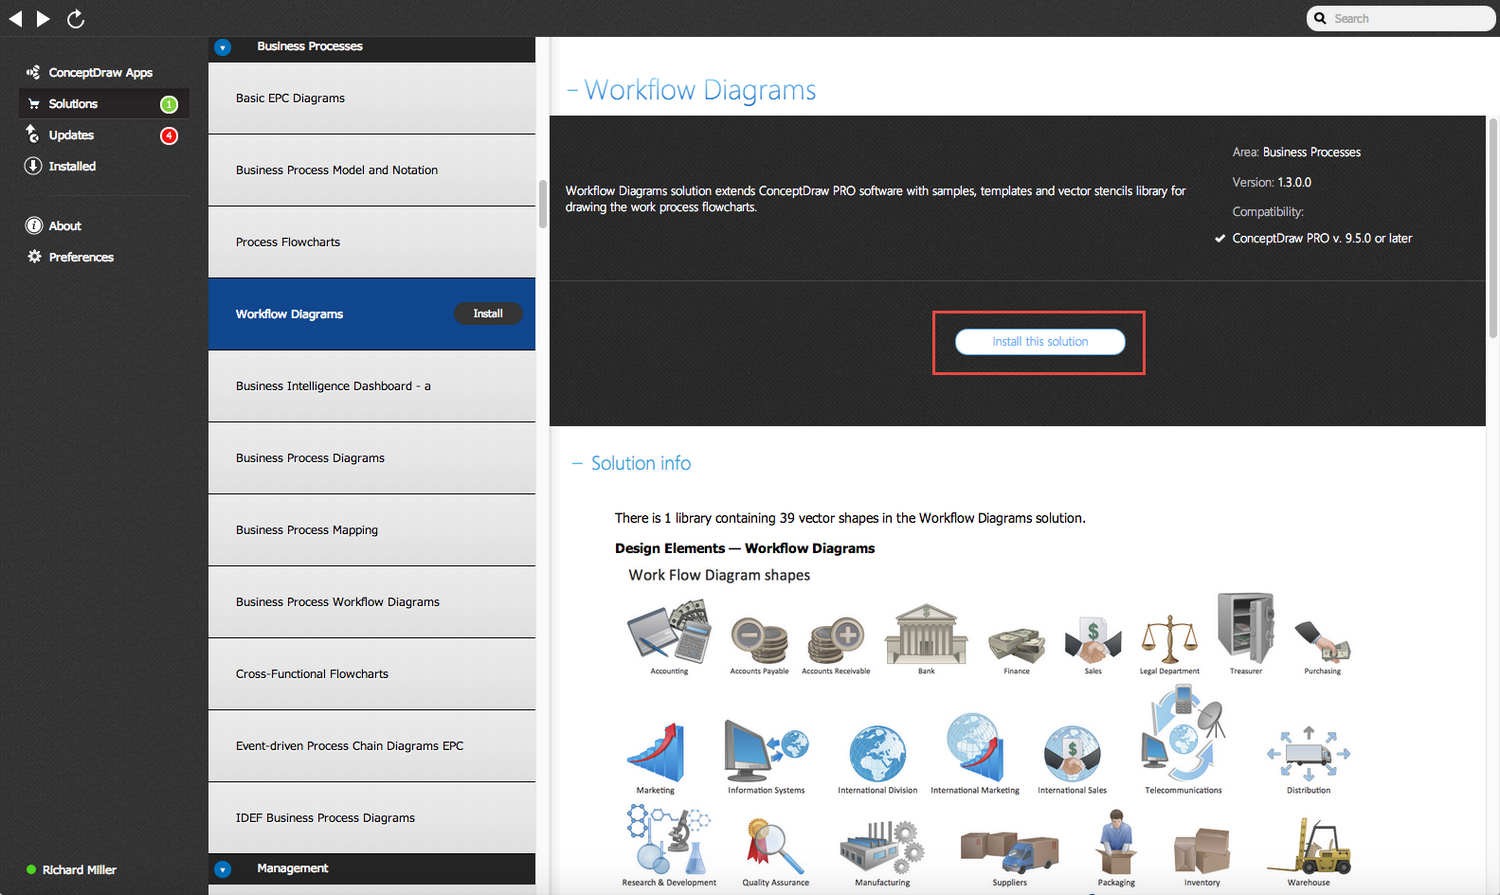 Workflow Diagrams Solution - Install